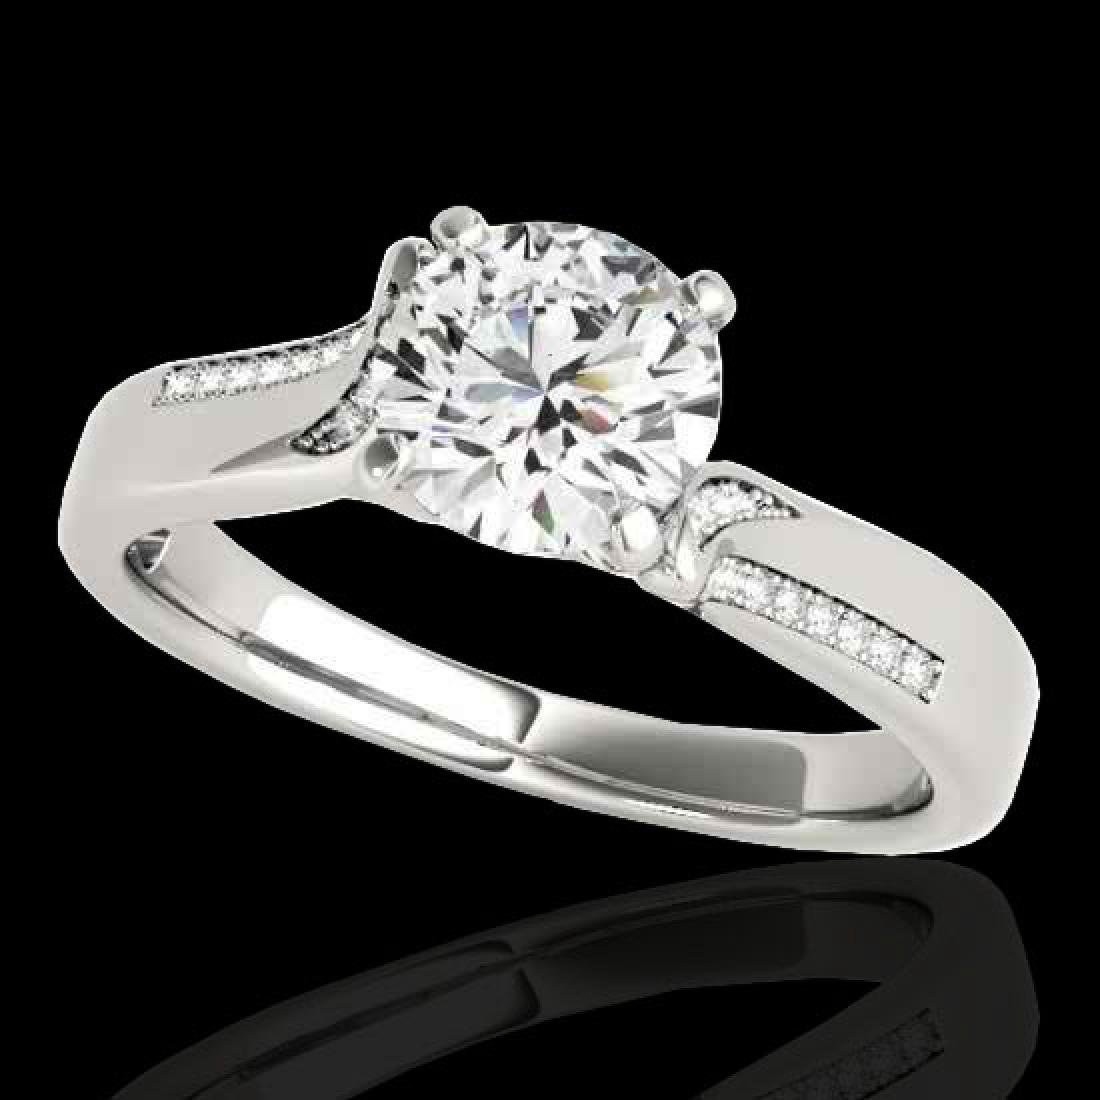 1.18 CTW G-Si Certified Diamond Solitaire Bridal Ring